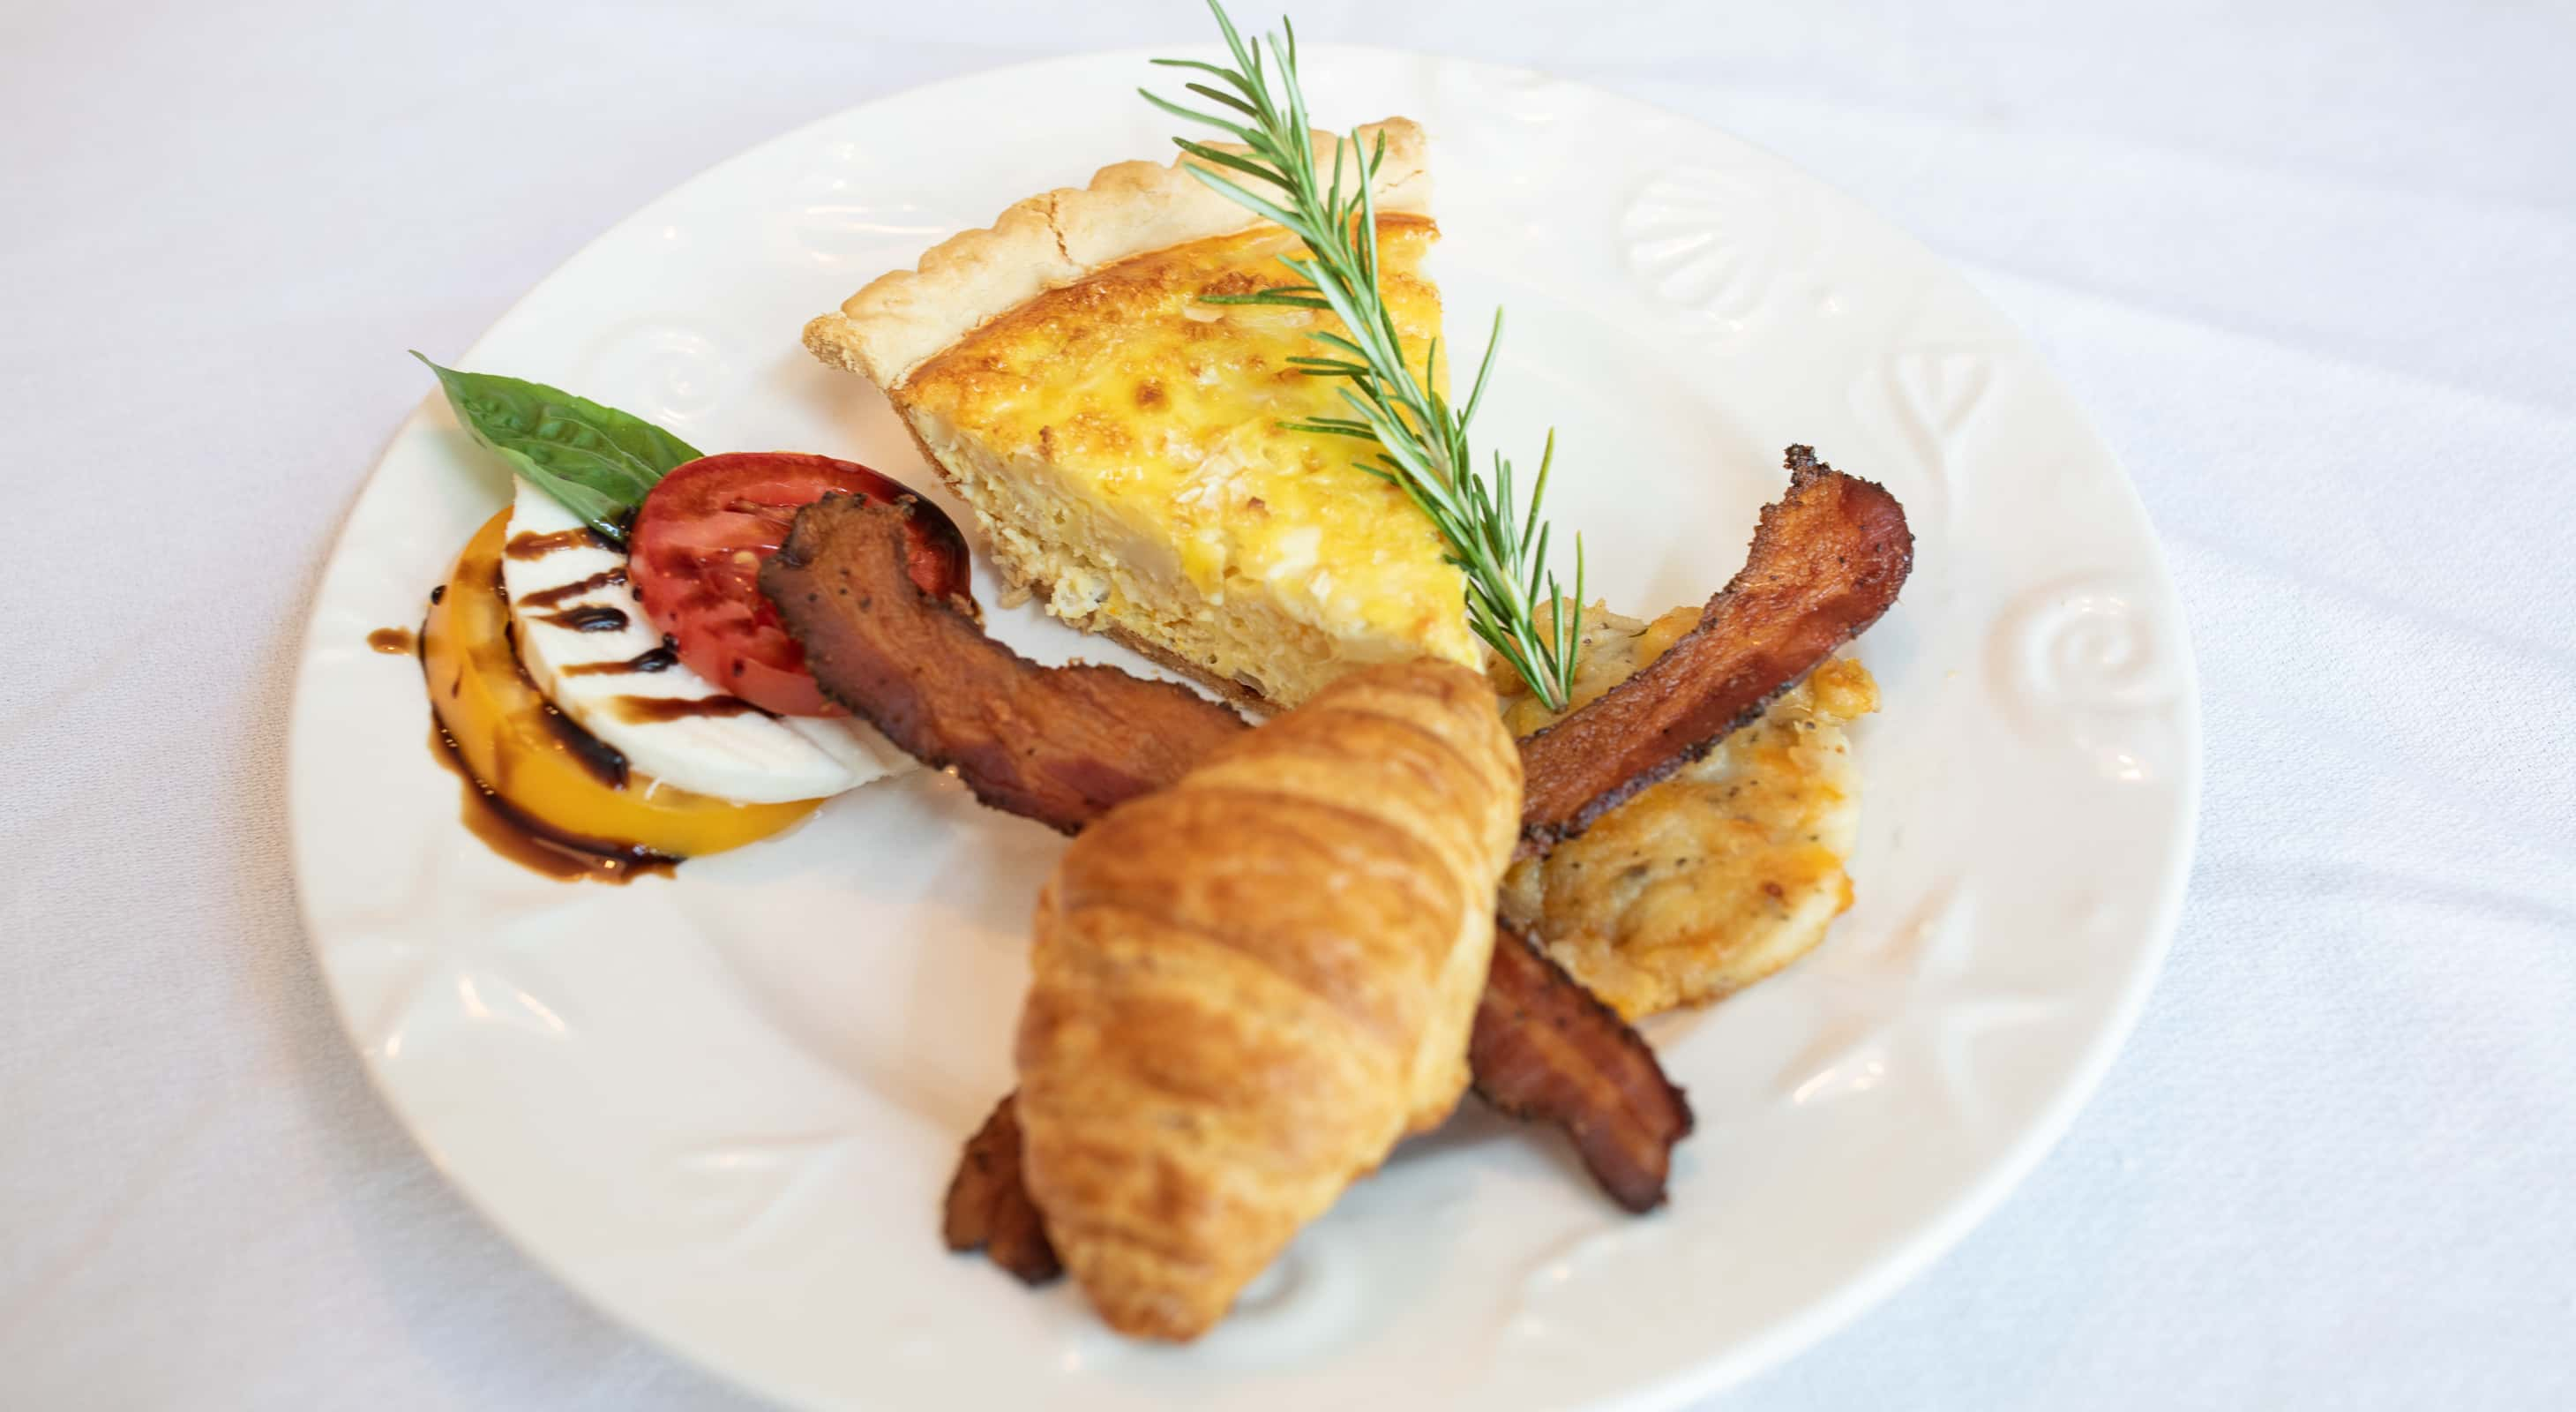 Breakfast Croissant, Quiche, Bacon, and Eggs